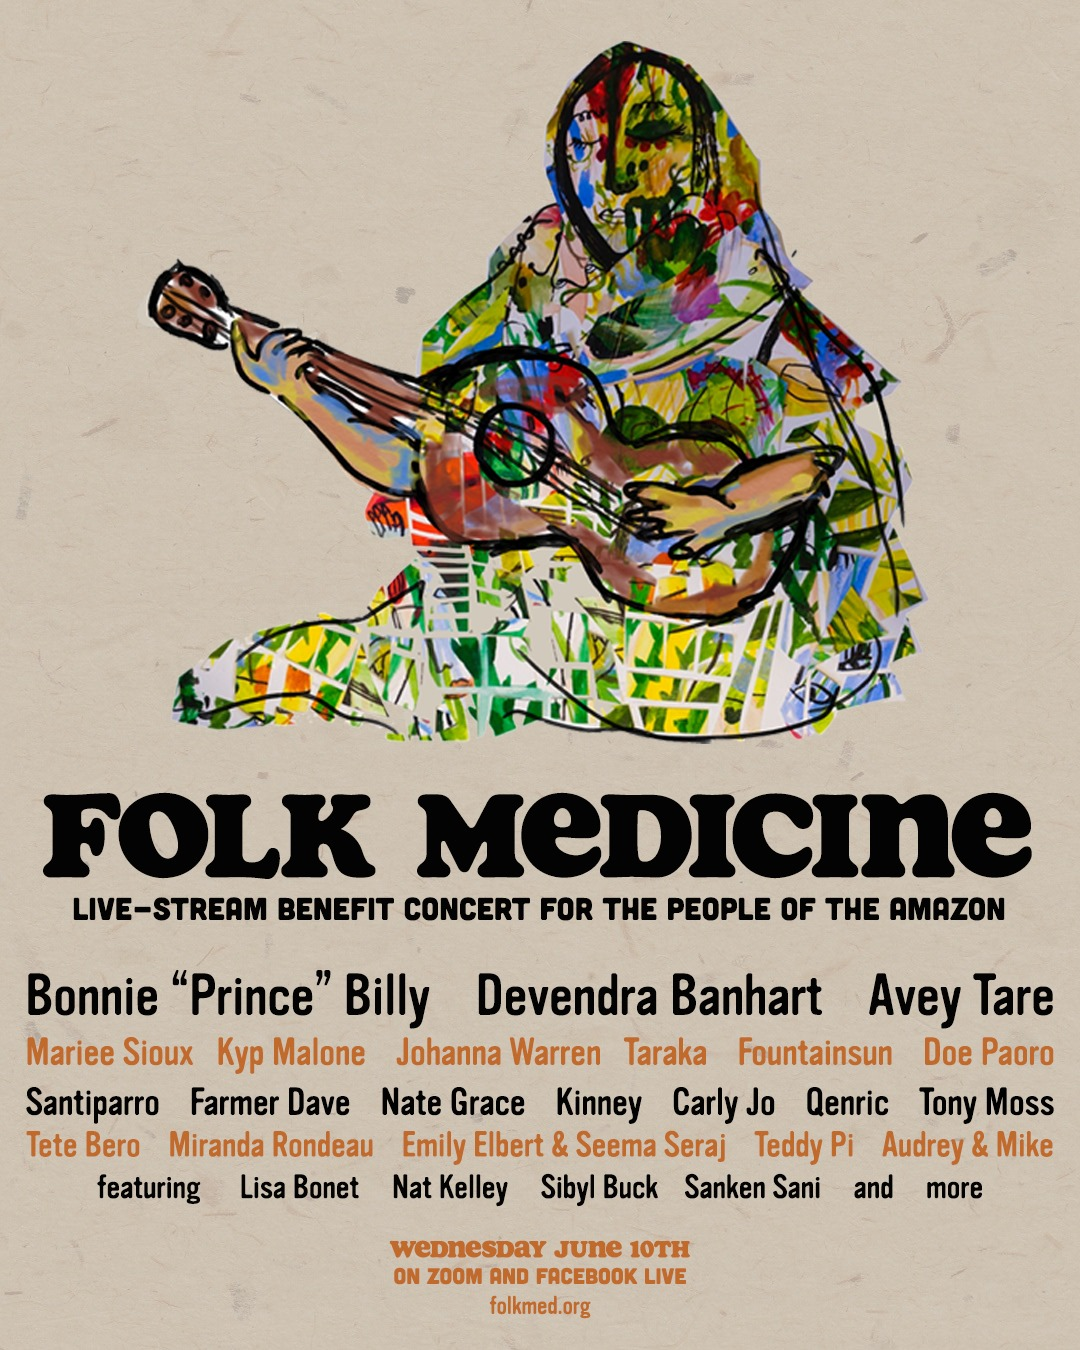 Folk Medicine: Live-stream benefit concert for the people of Amazon, 6/10